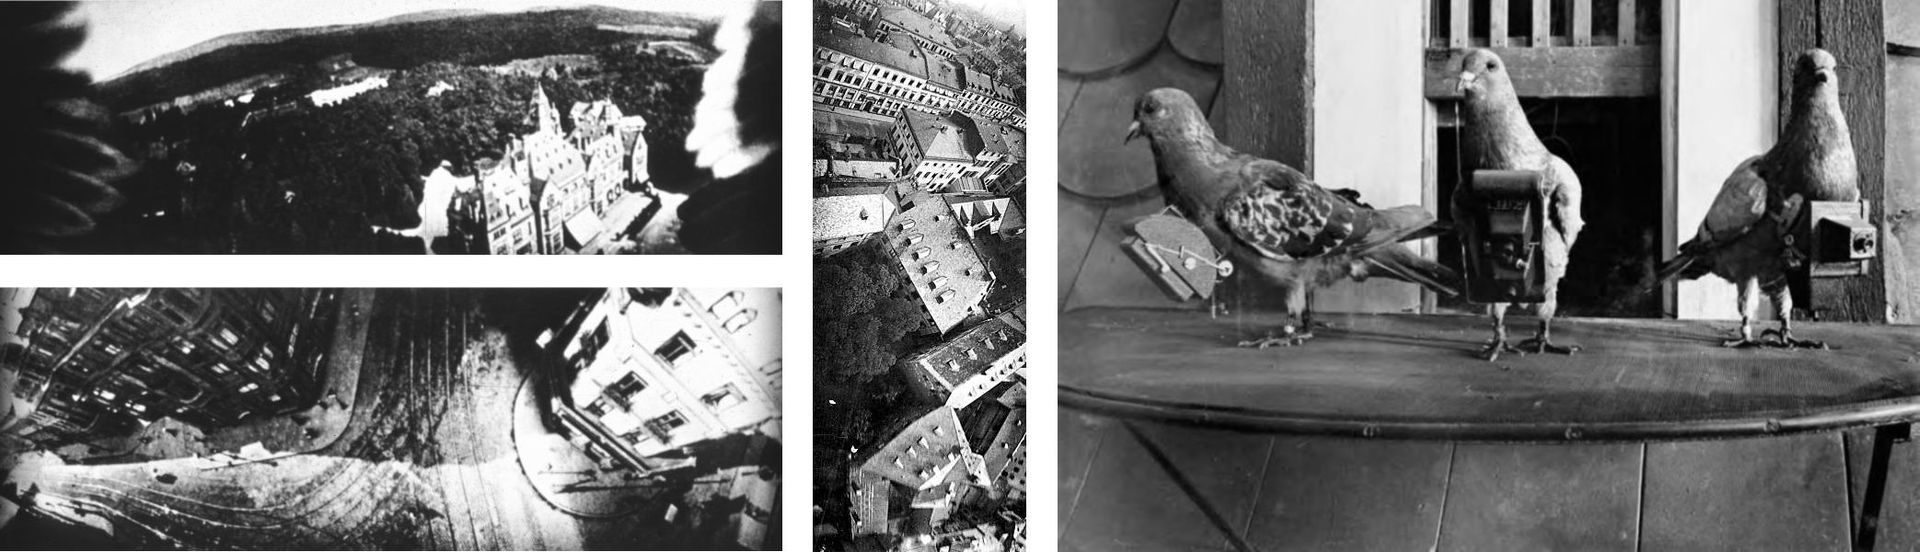 Pigeon photographers and aerial photographs image